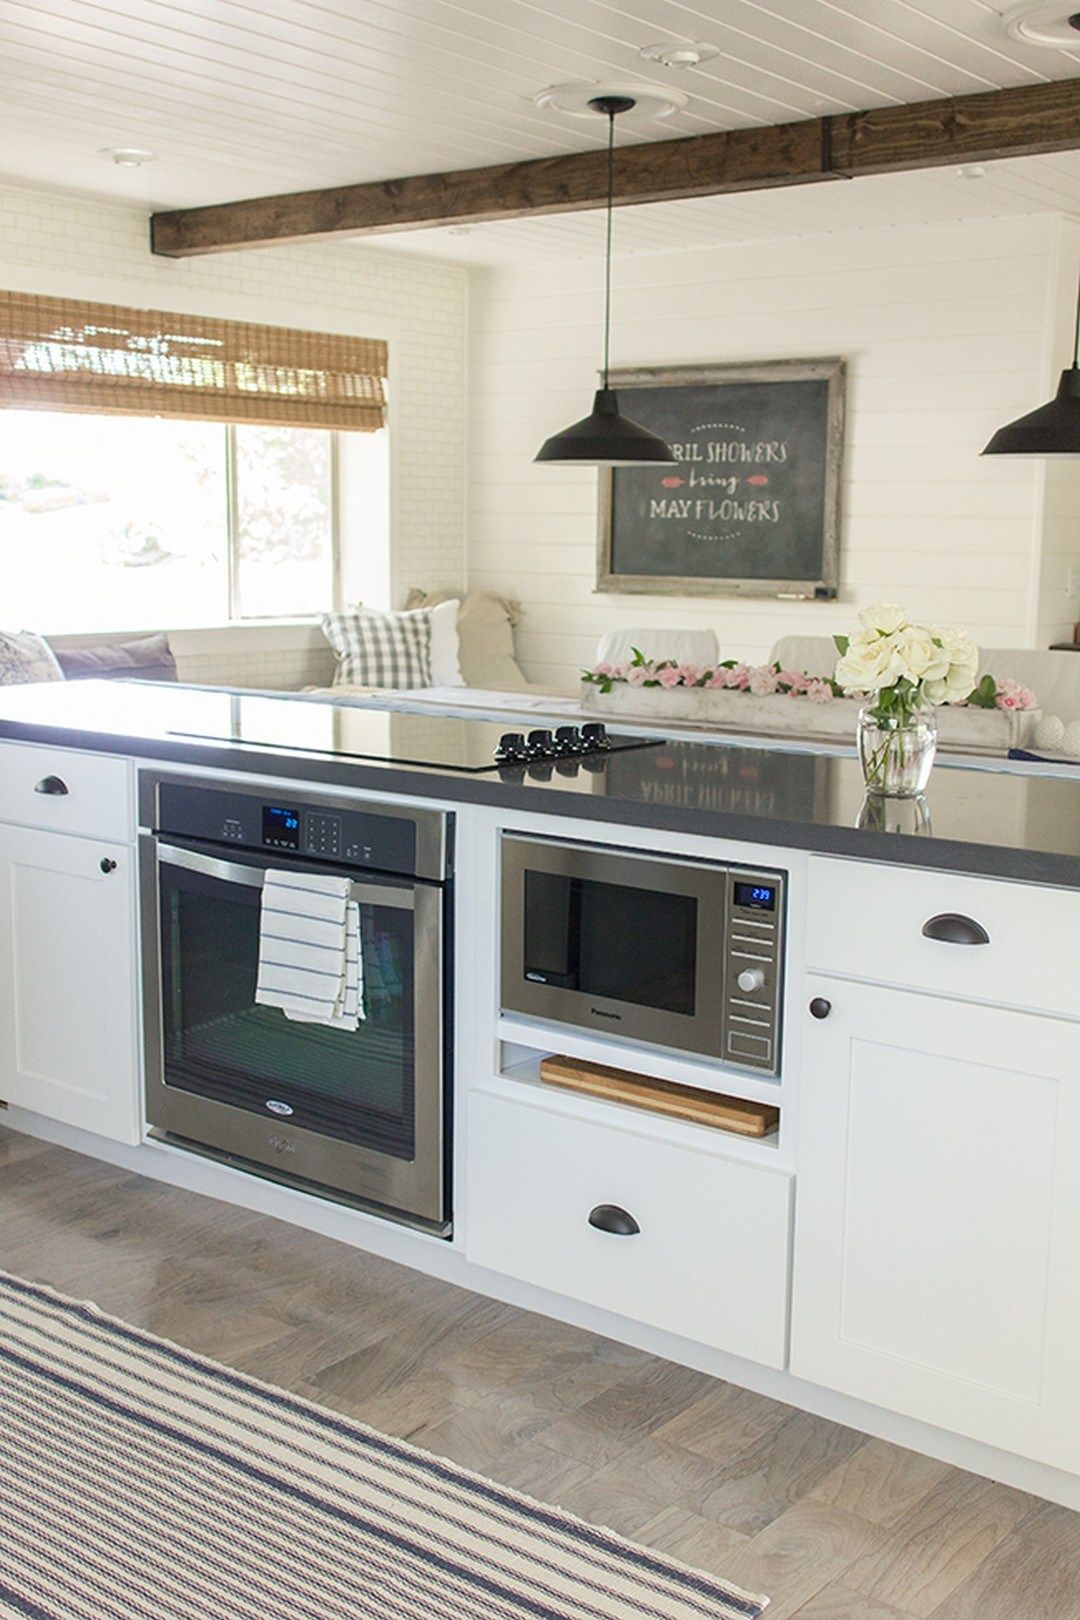 Creative Kitchen Islands With Stove Top Makeover Ideas 3 Kitchen Island With Stove Kitchen Island With Cooktop Island With Stove